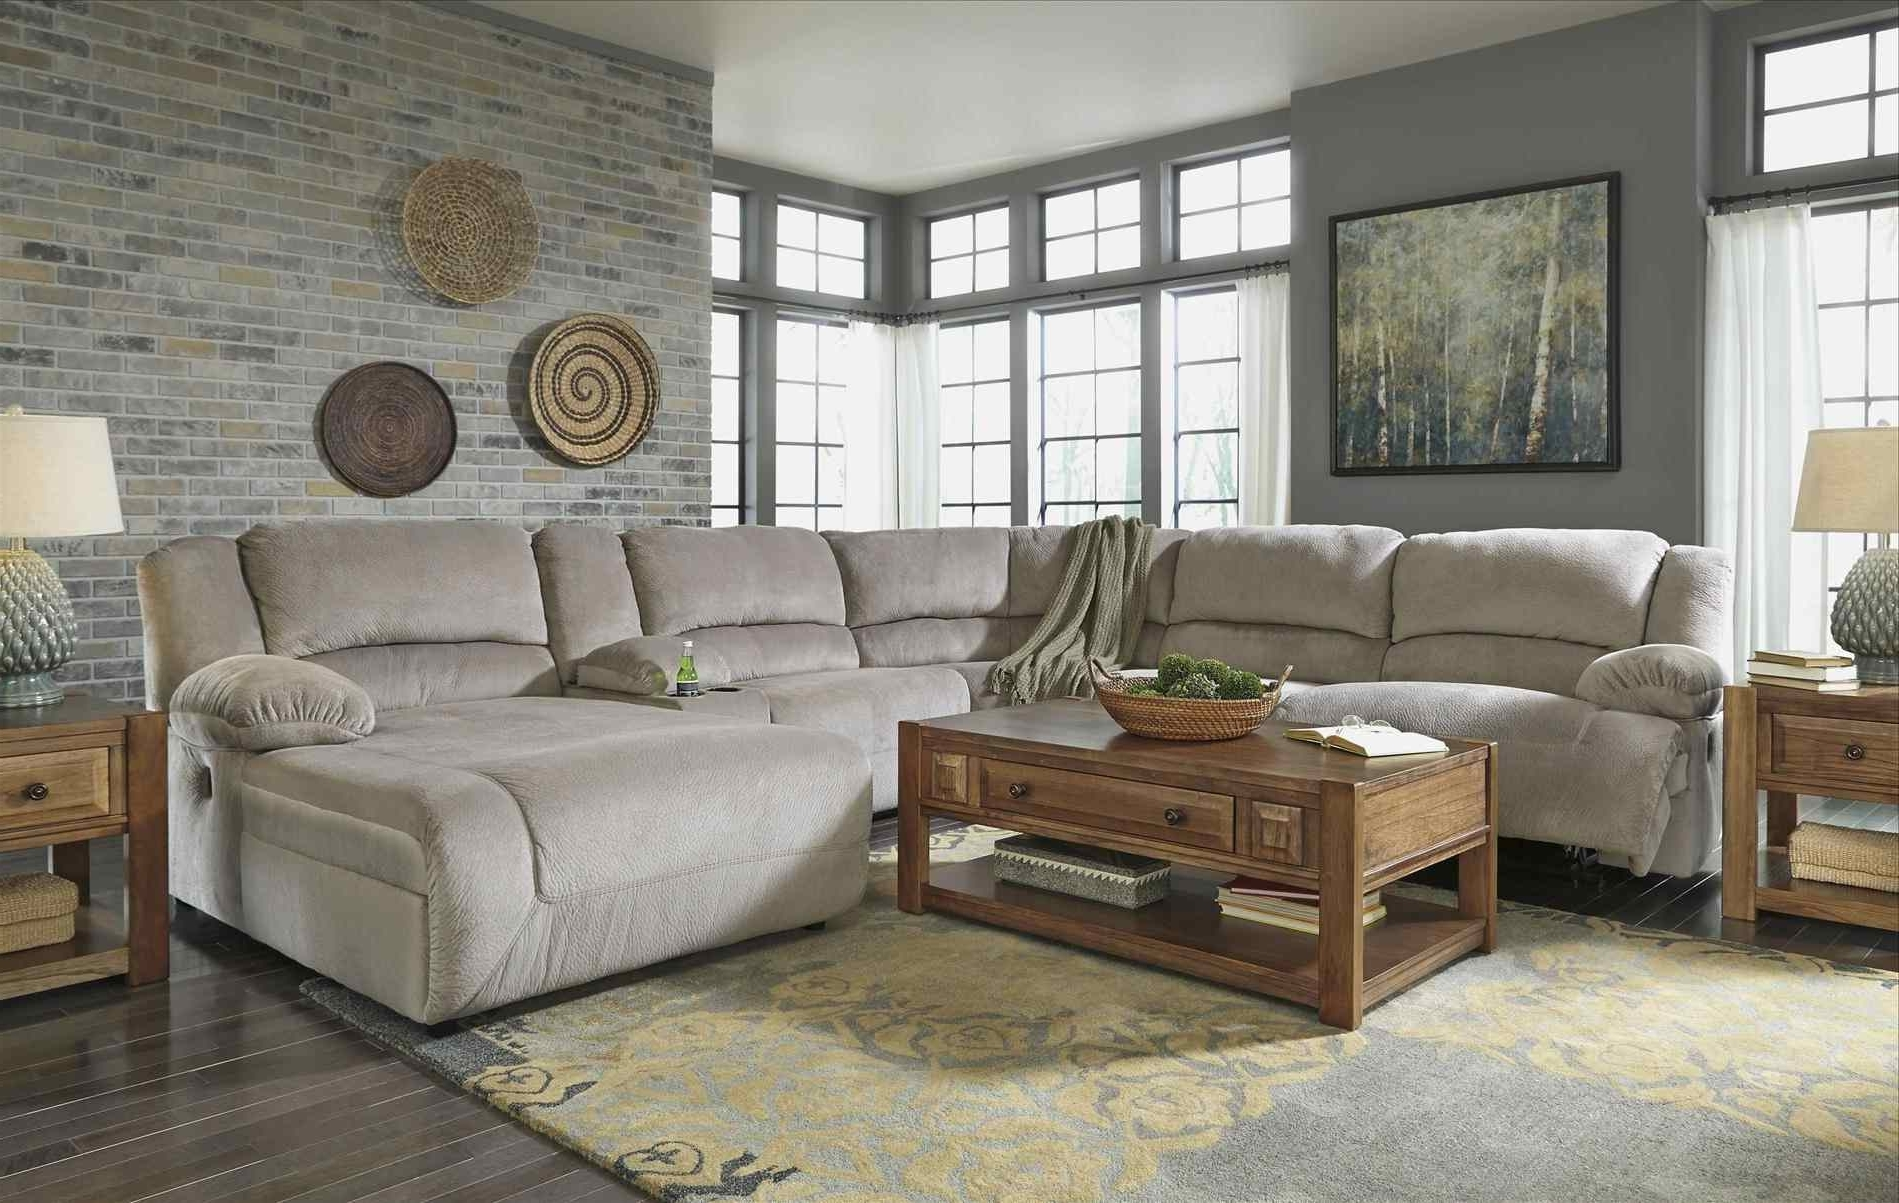 Couch : Furniture Bad Boy Sectional Es Wrap Around Couch Furniture For Current Sectional Sofas At Bad Boy (View 14 of 15)